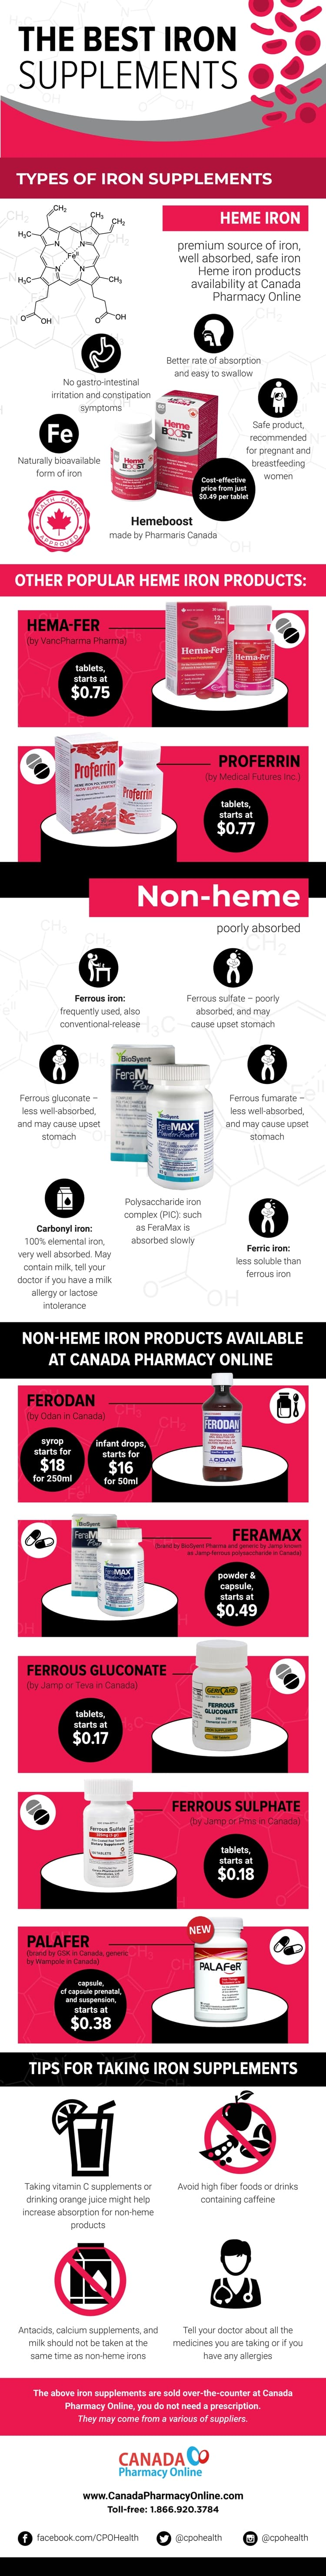 Iron Supplement Infographic by Canada Pharmacy Online